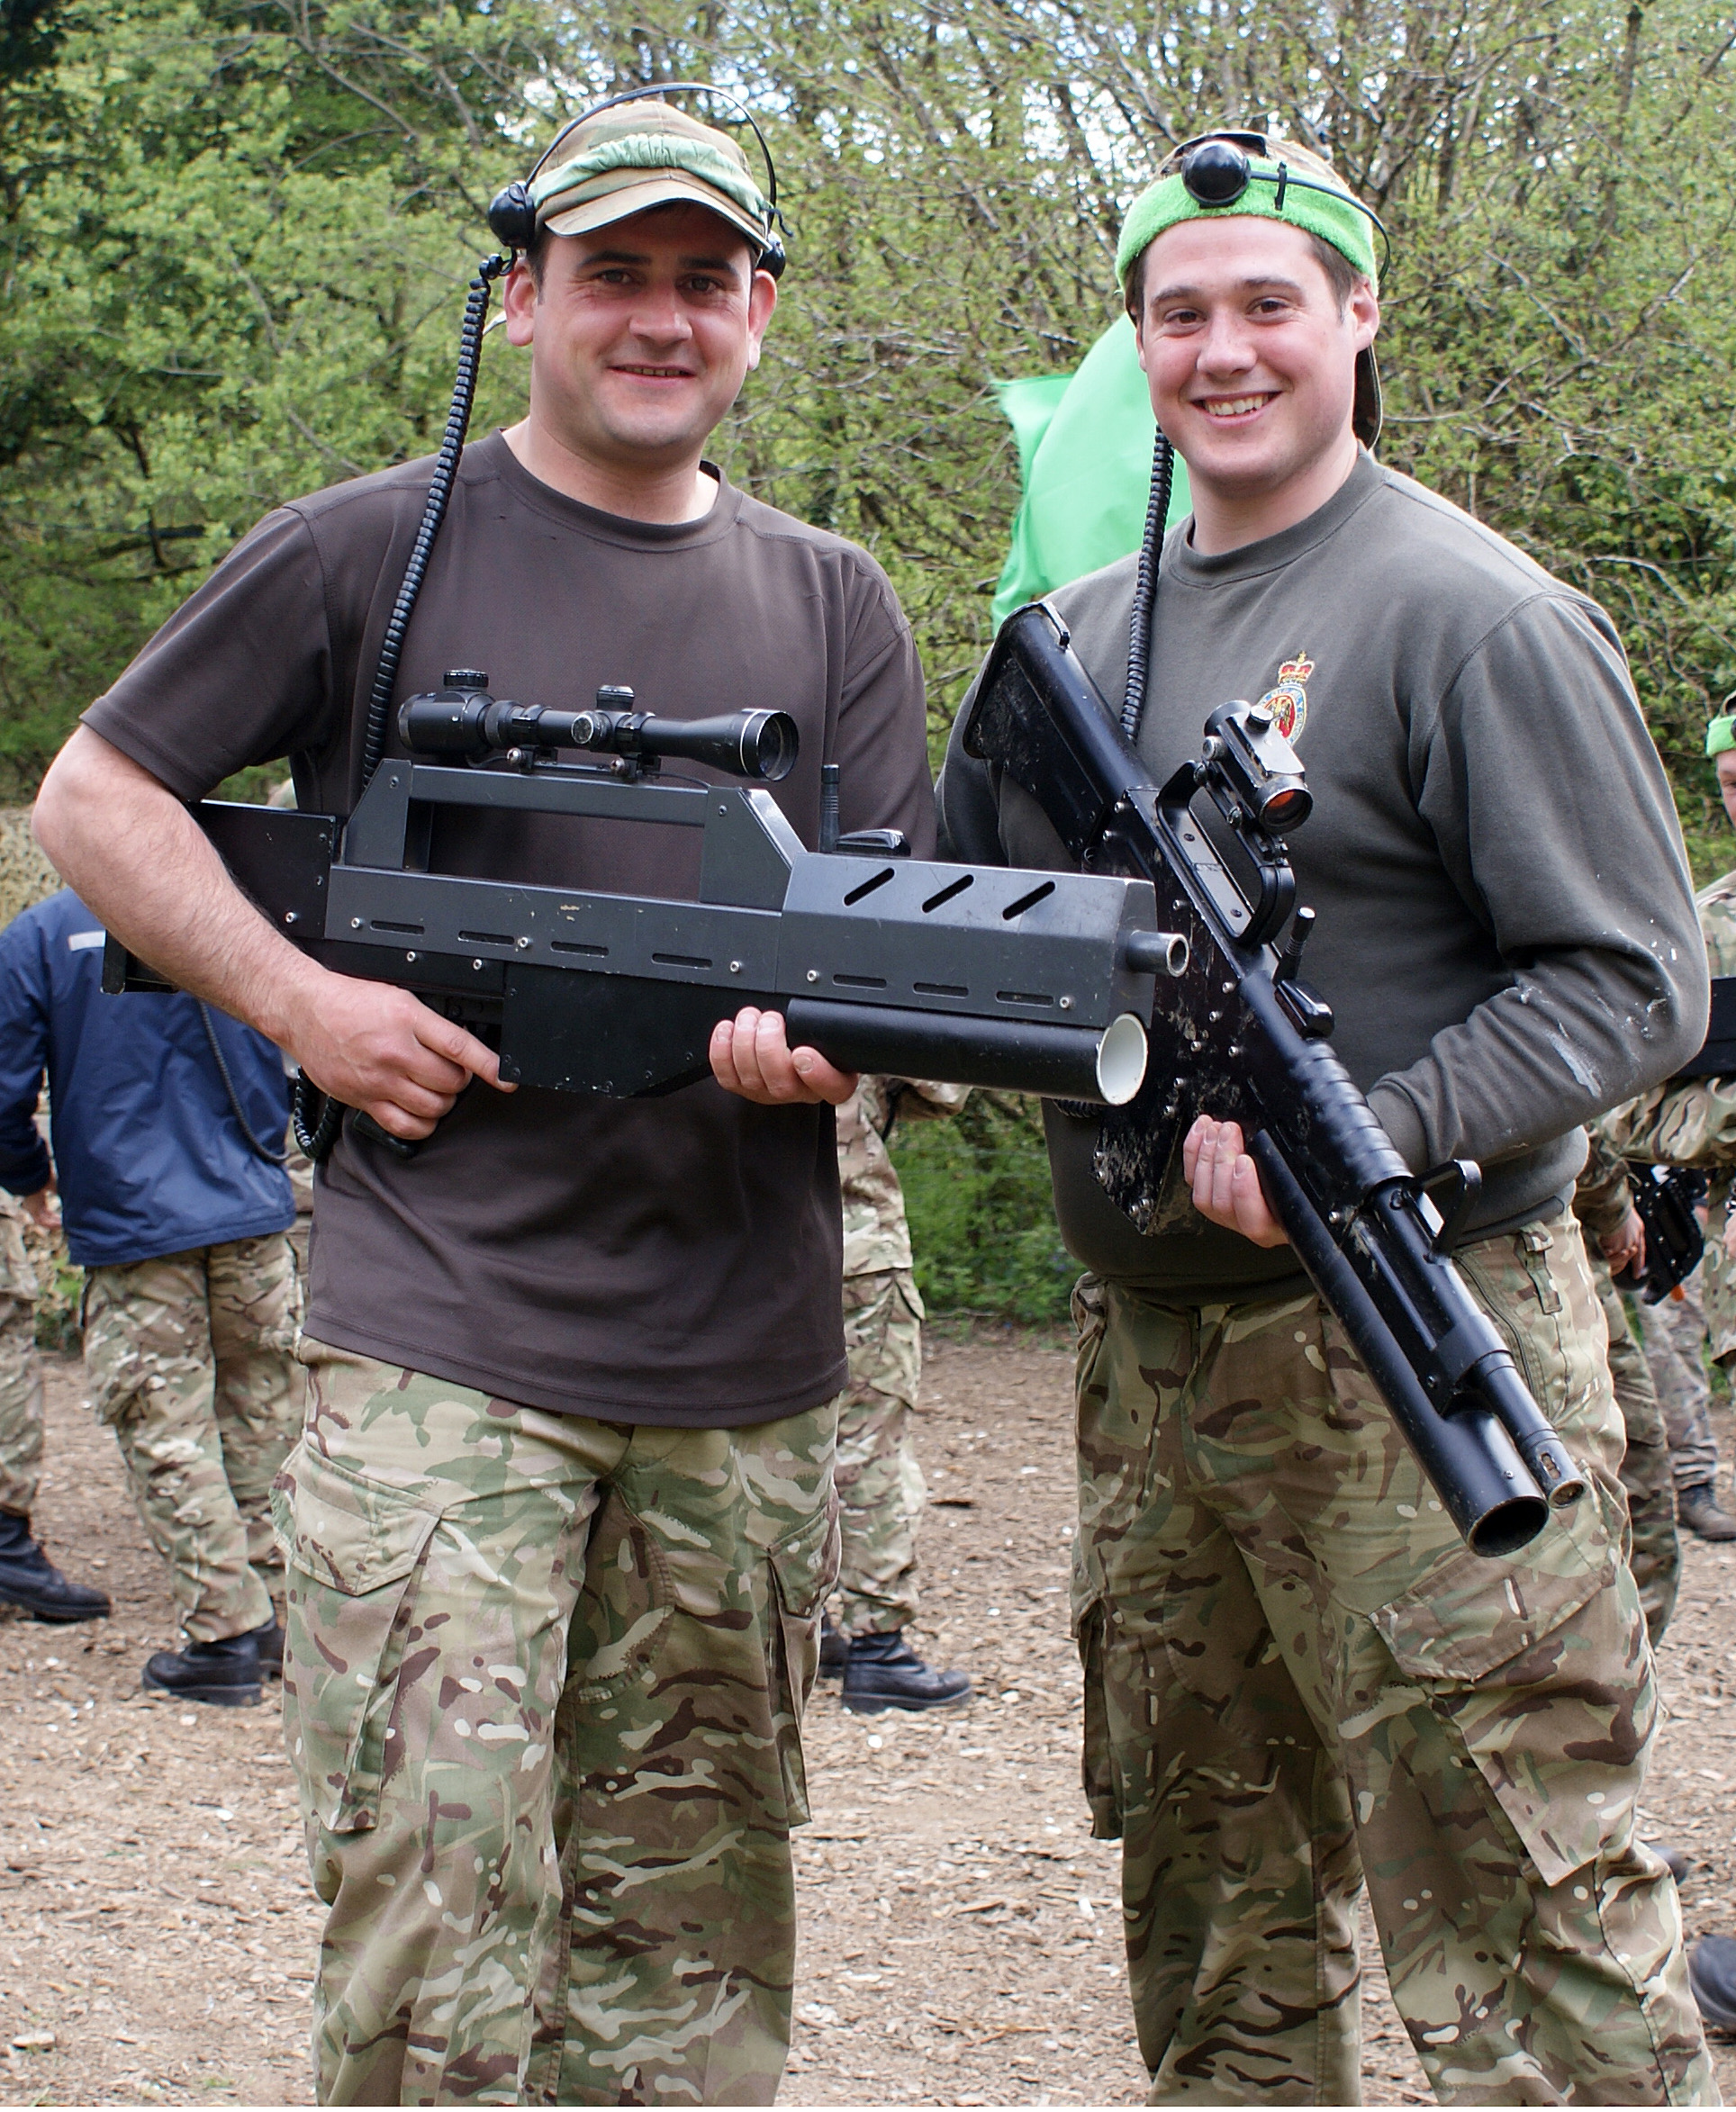 Members of The Household Cavalry Mounted Regiment enjoying laser combat at Battlefield Live in Pembrokeshire